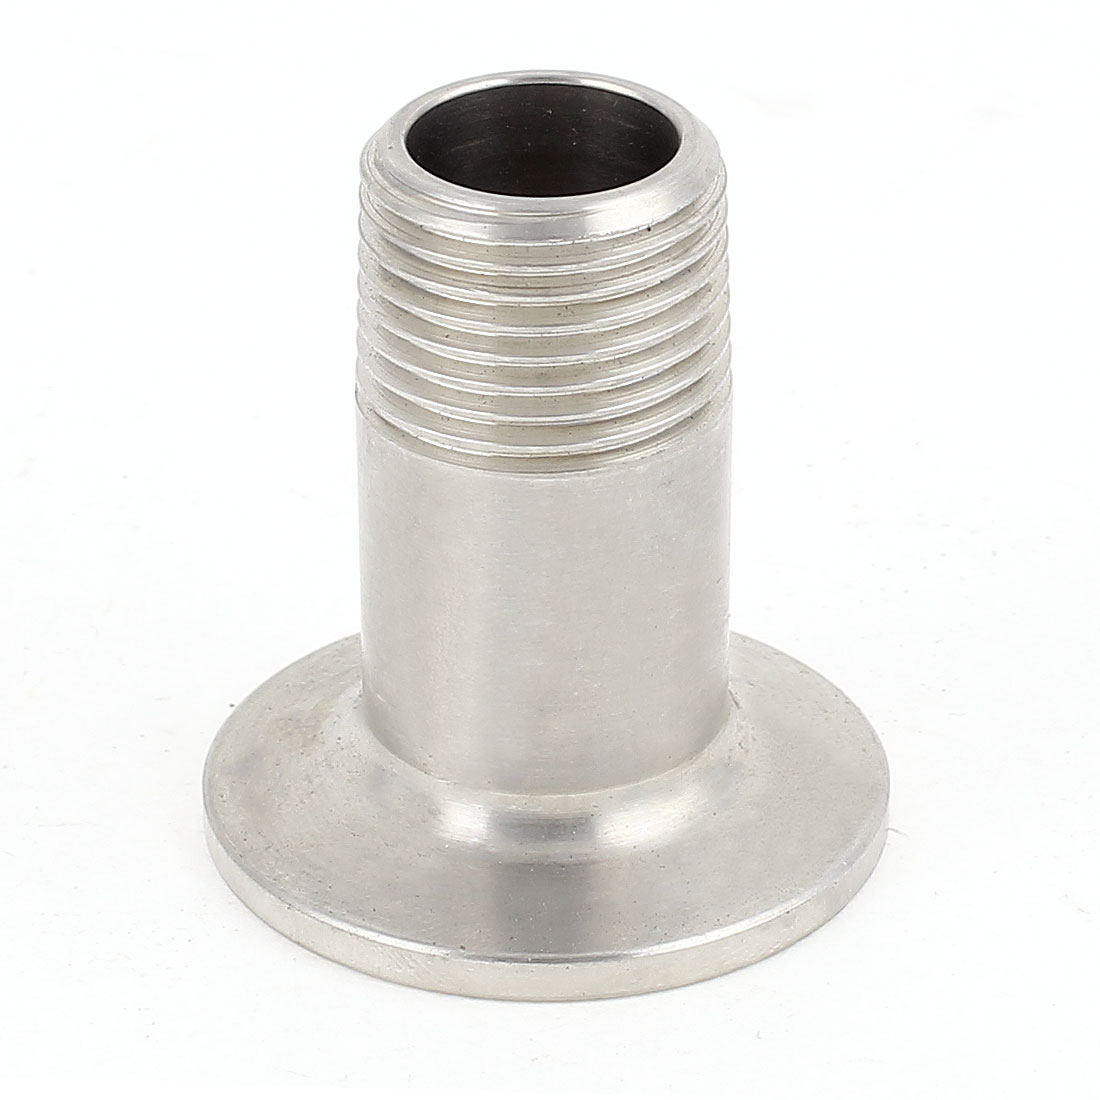 Stainless Steel 304 KF-25 Flange to 1/2BSP Male Thread Adapter Fitting